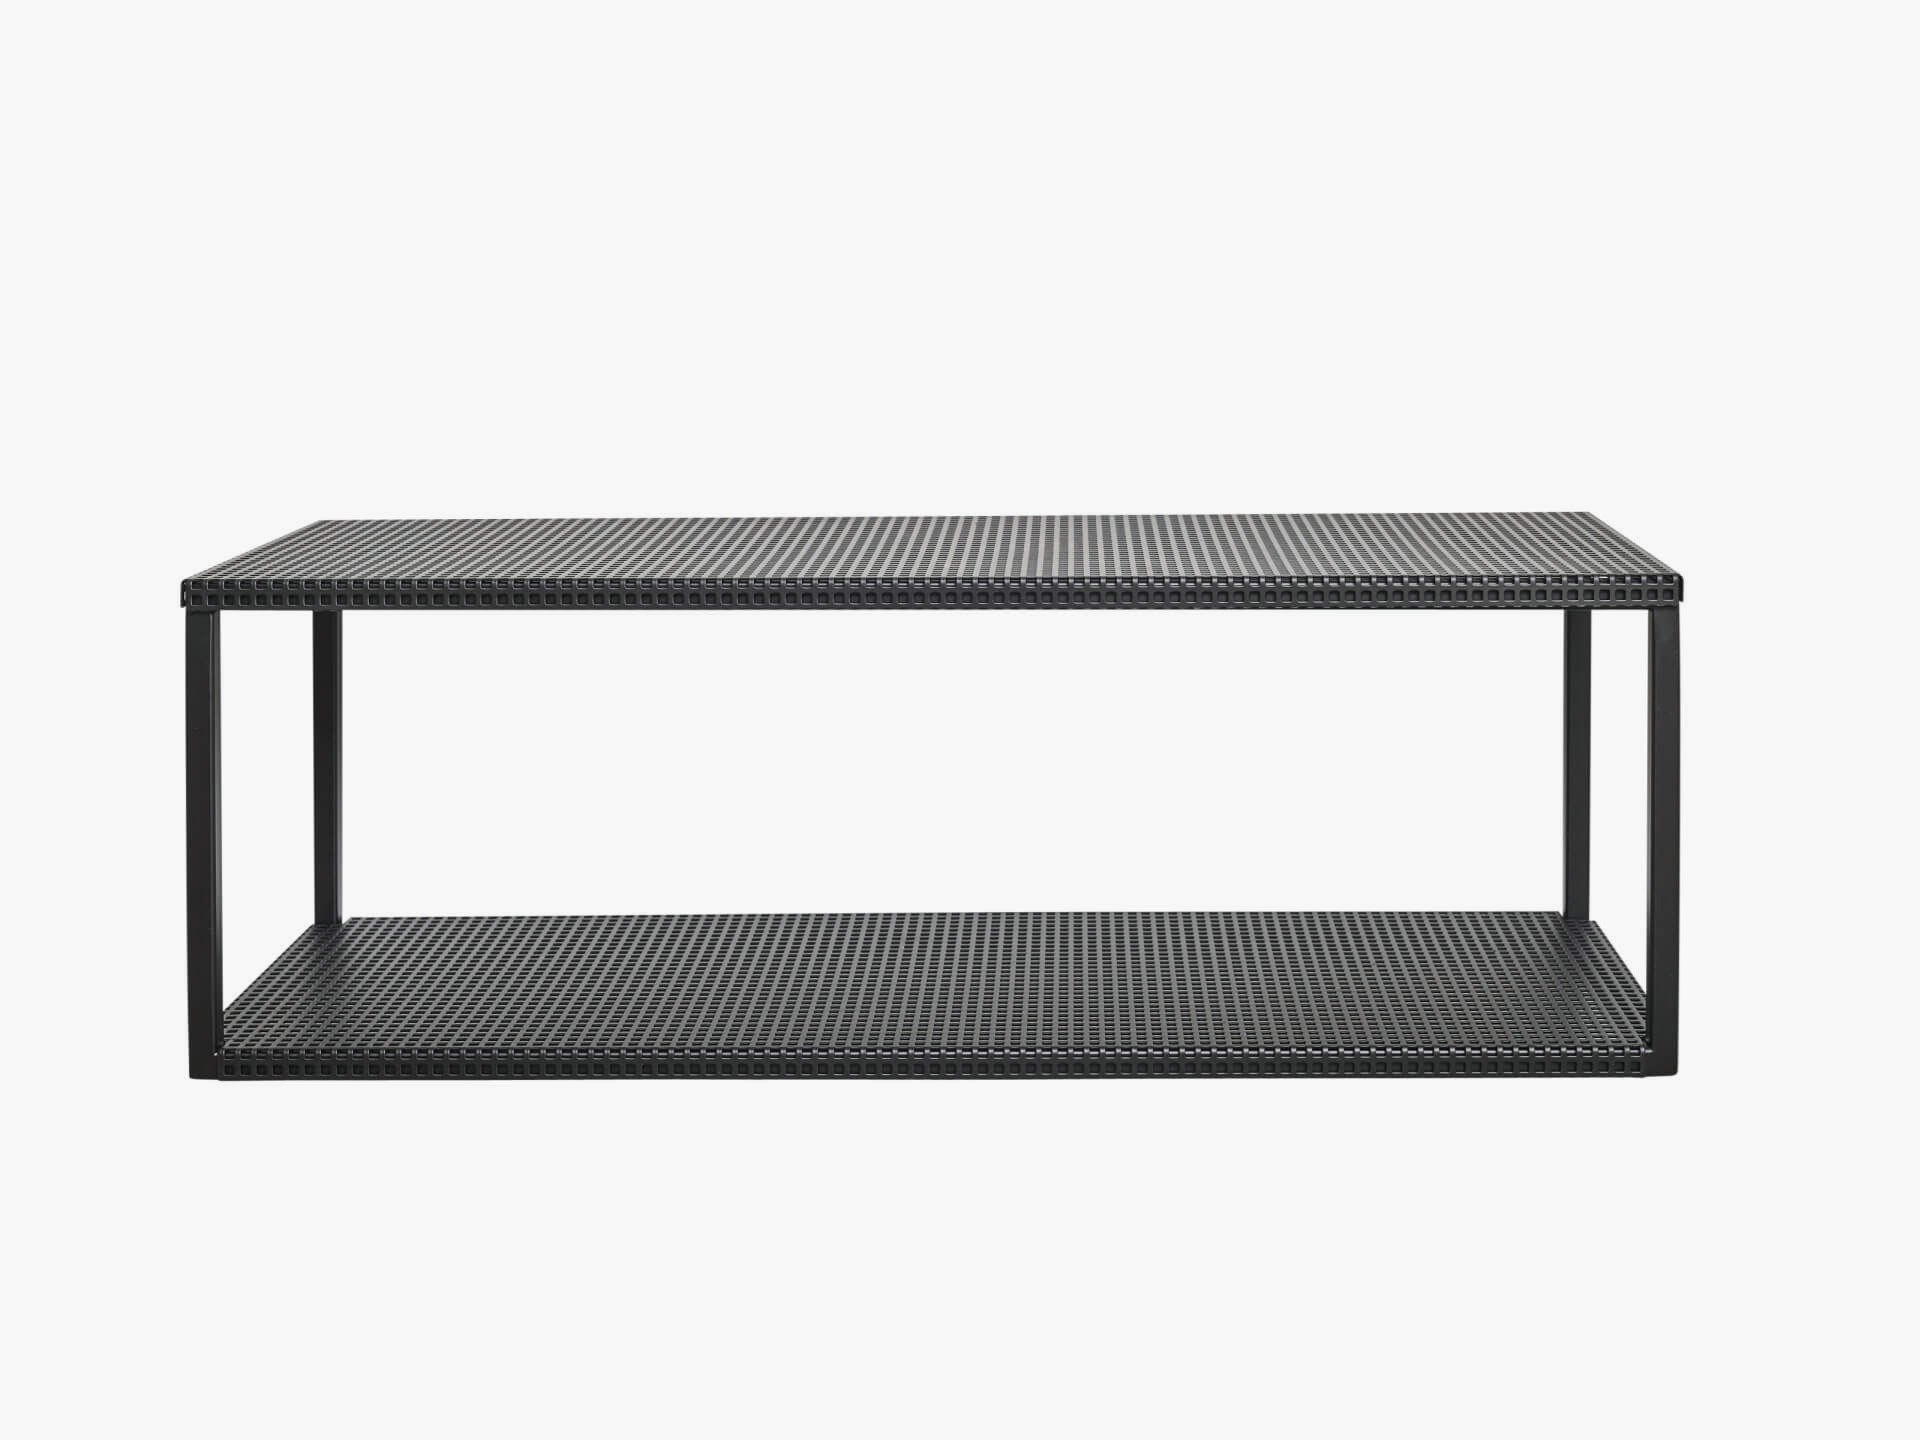 Kristina Dam Grid wall shelf